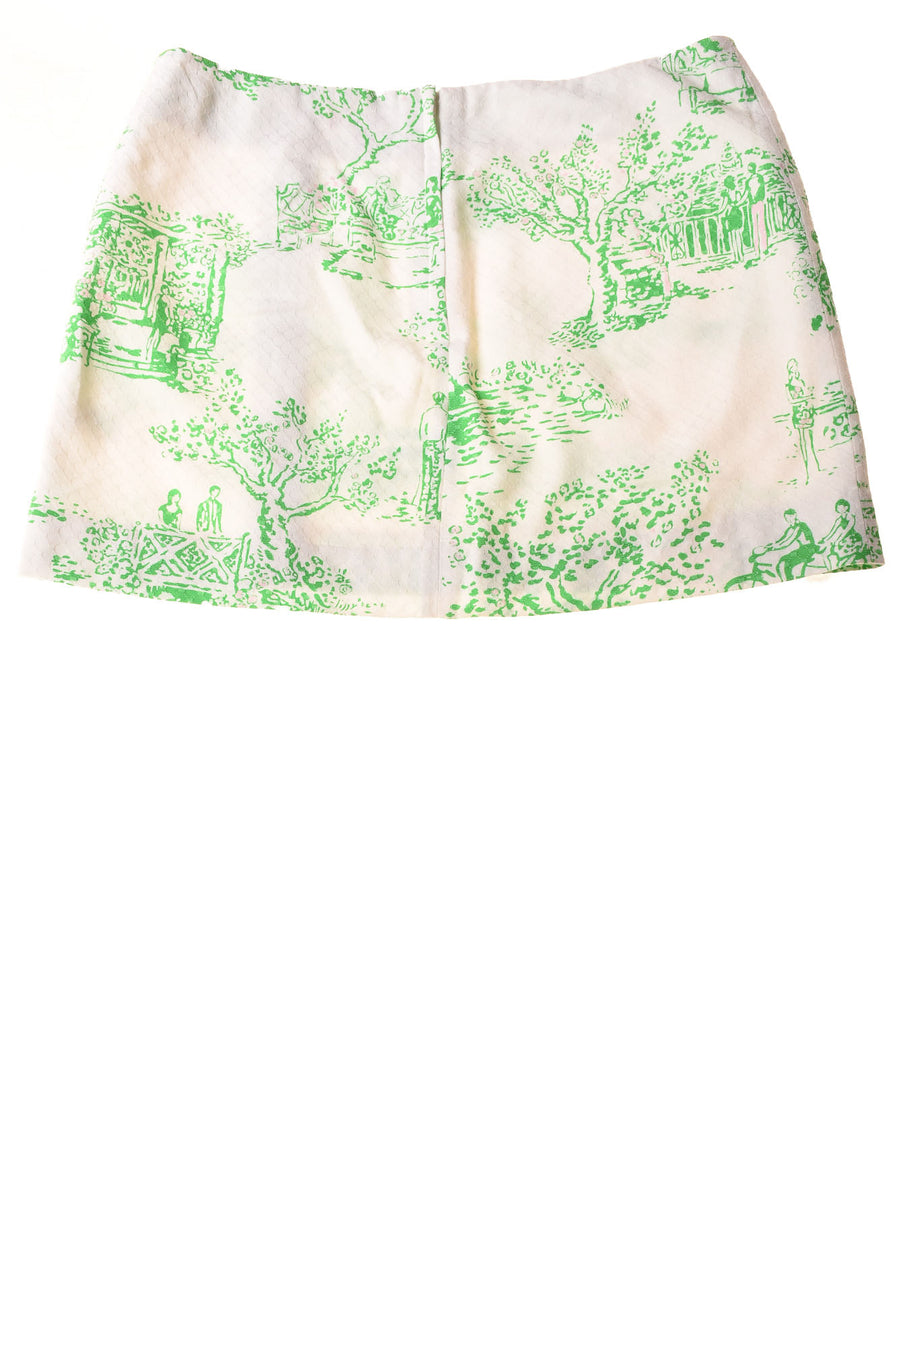 USED Lilly Pulitzer Women's Skirt  6 White / Print